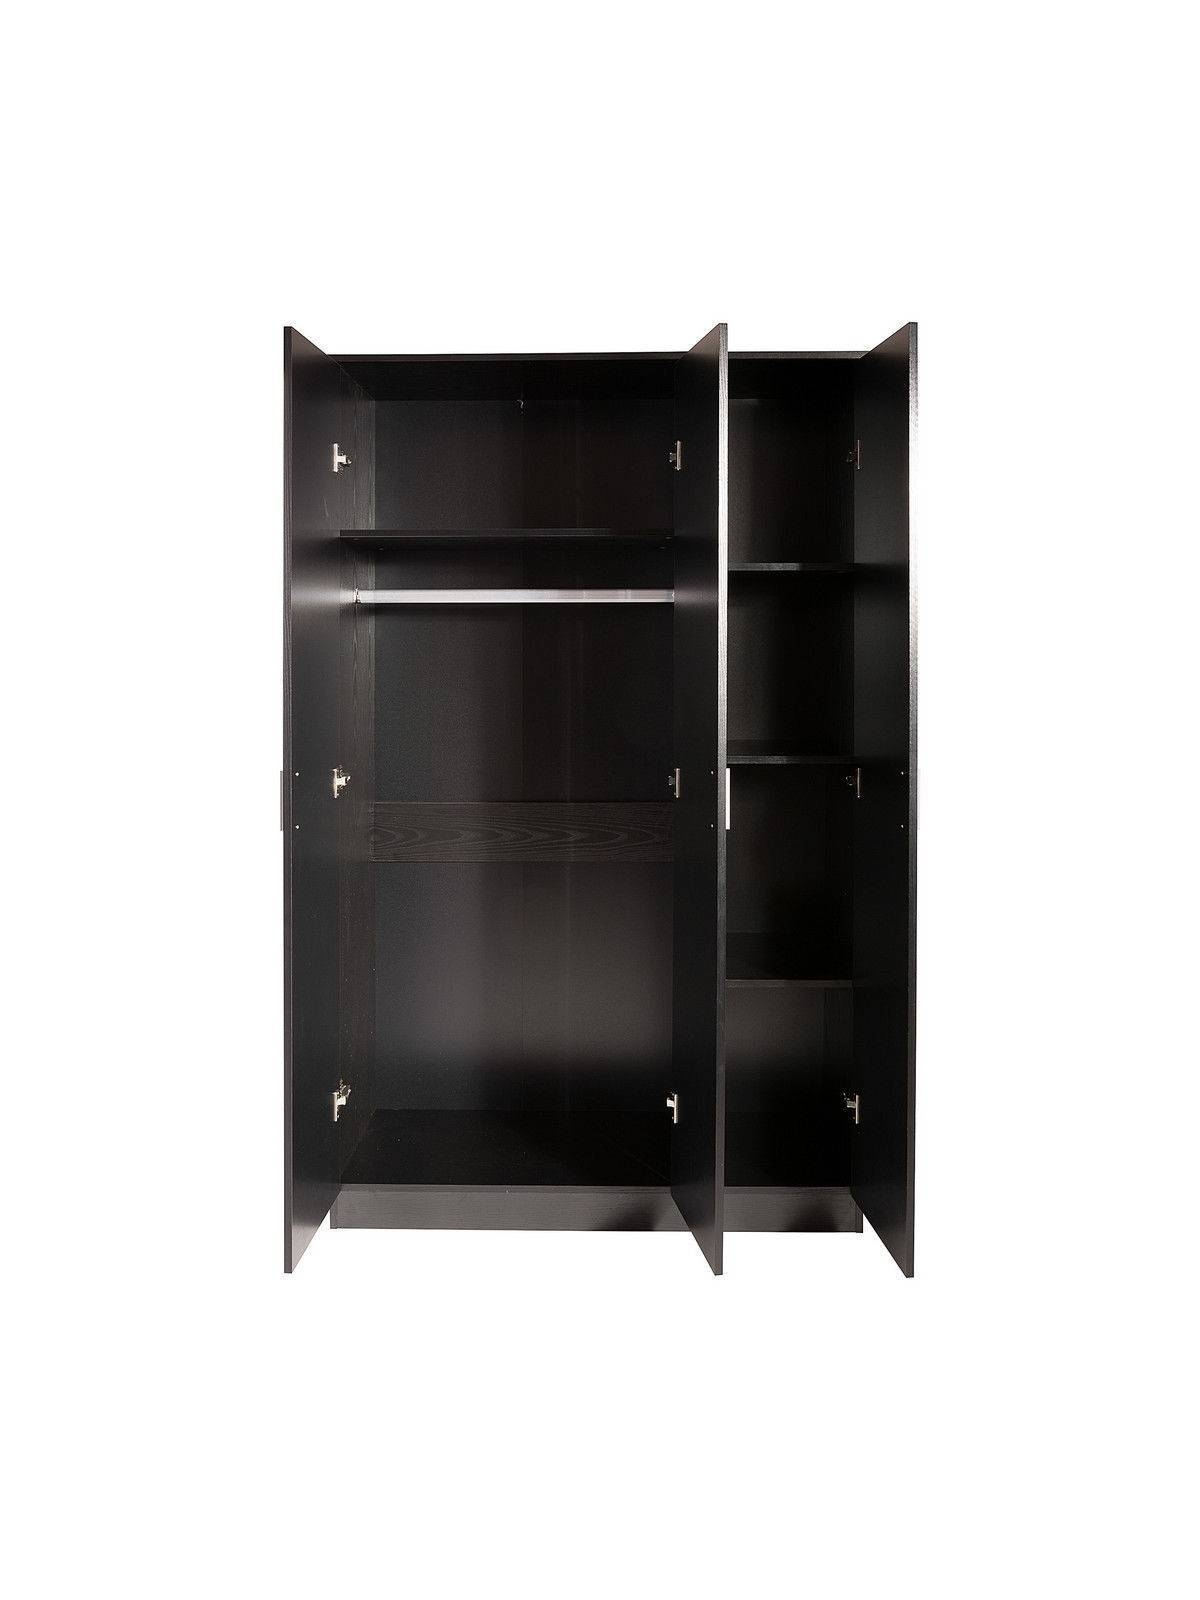 Supreme High Gloss 3 Door Wardrobes With Shelves Black Oak Walnut within Wardrobes With Shelves (Image 21 of 30)